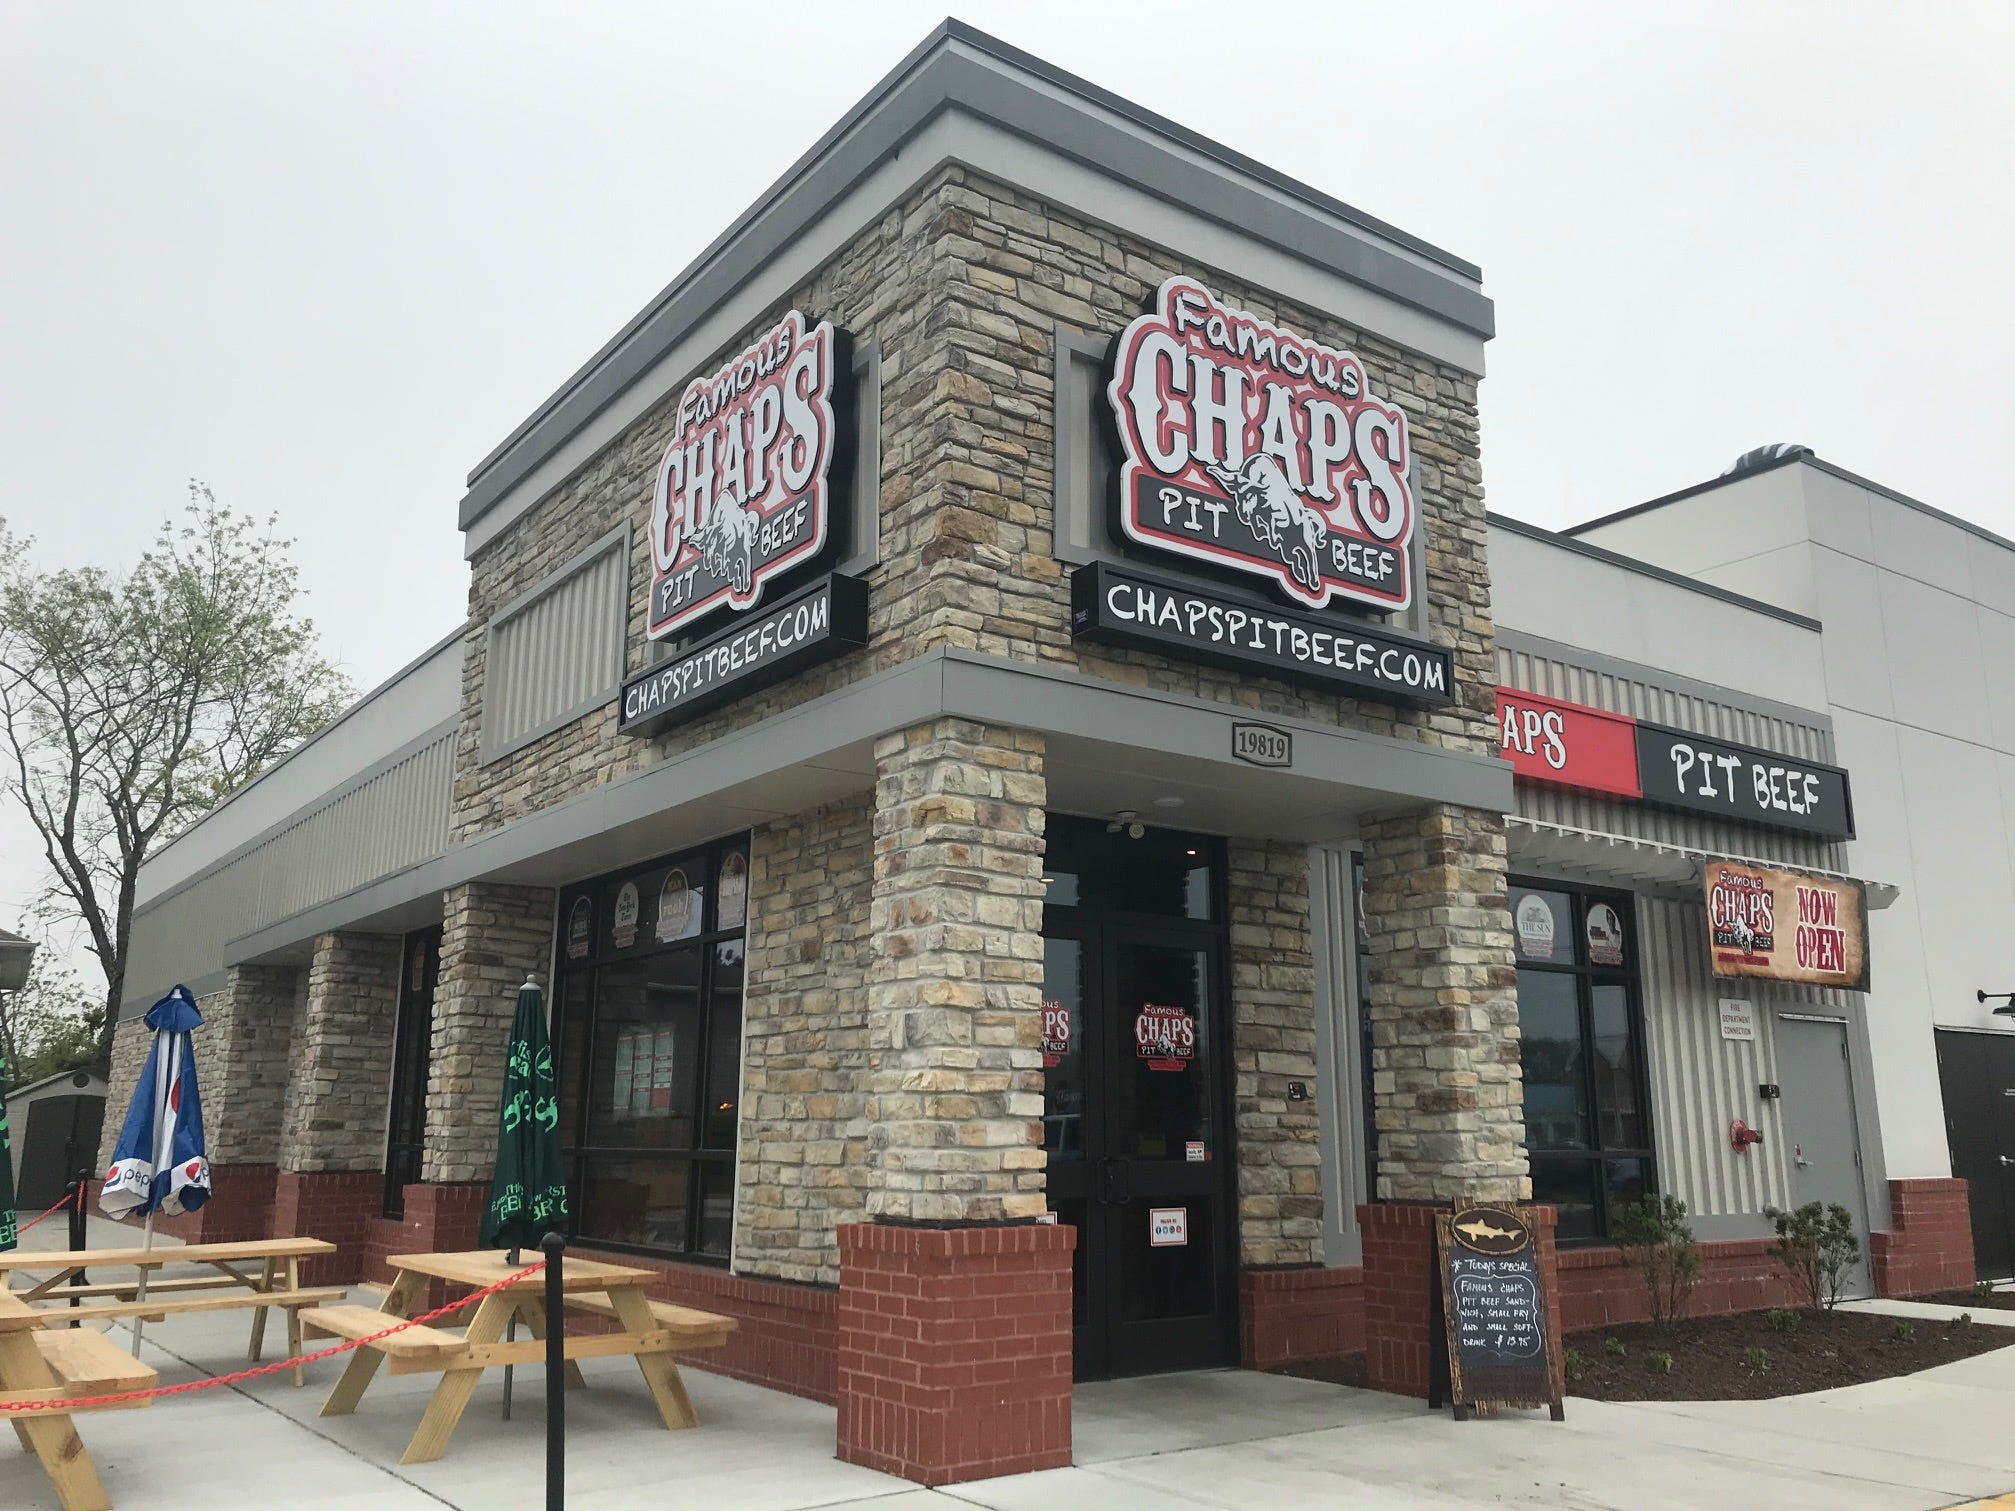 Chaps Pit Beef has opened a franchise in Rehoboth Beach. The eatery was founded in Dundalk, Maryland